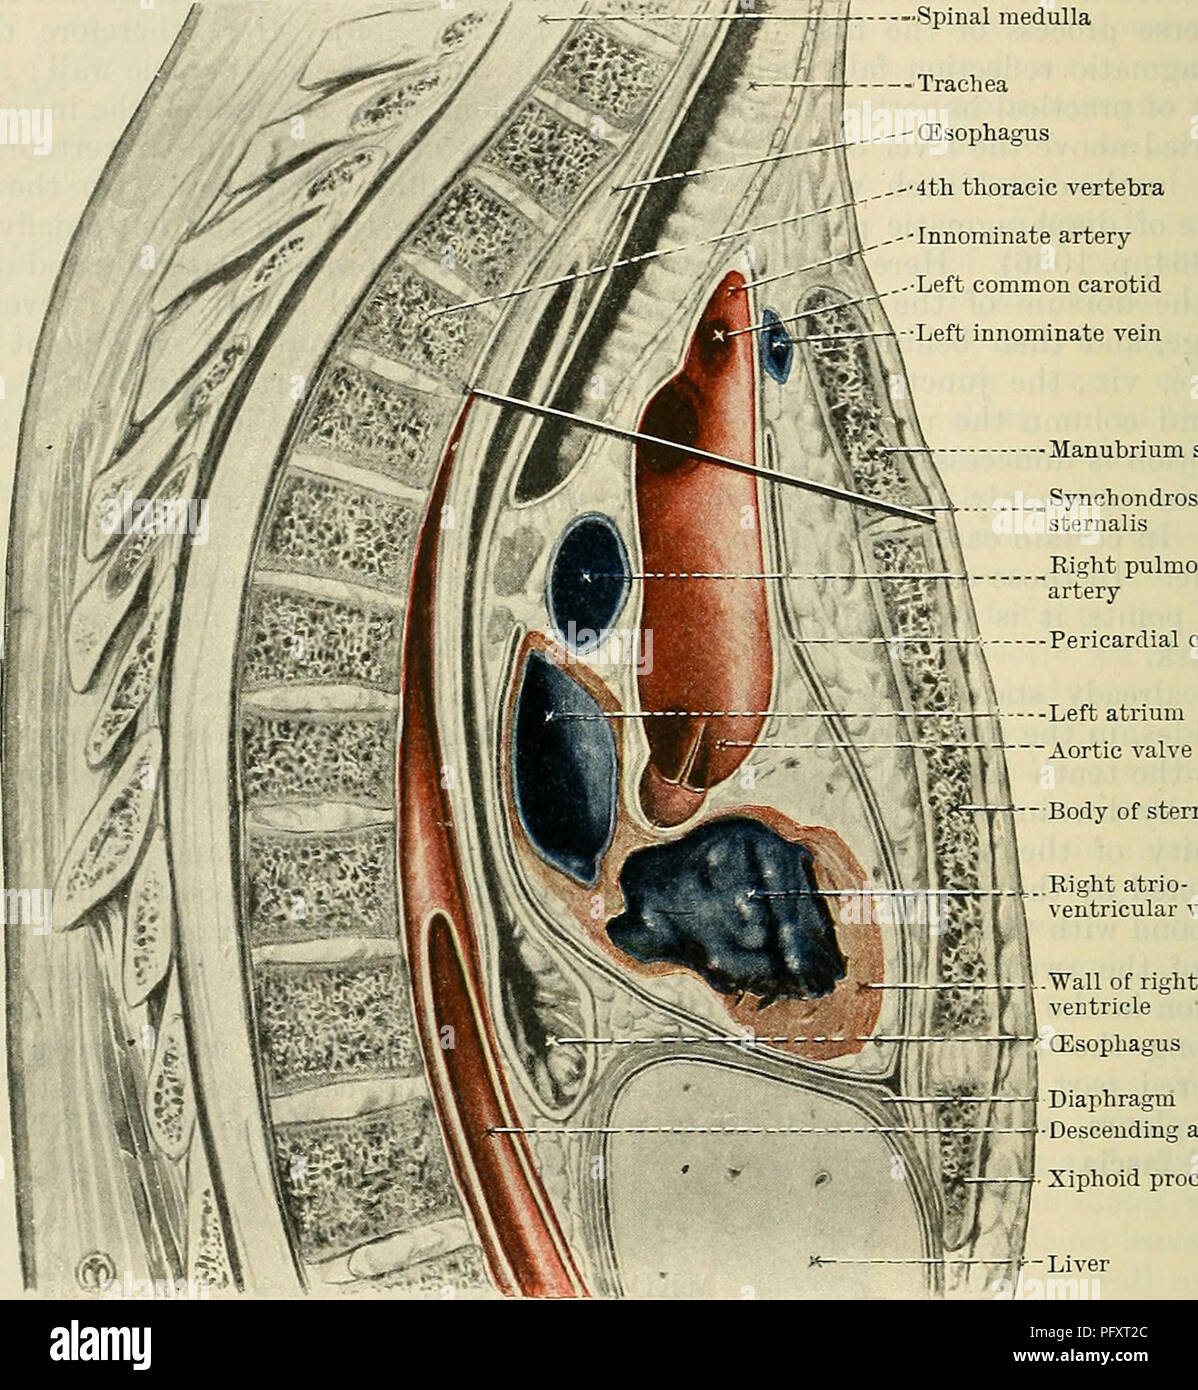 hight resolution of cunningham s text book of anatomy anatomy 1090 the kespiratoky system great